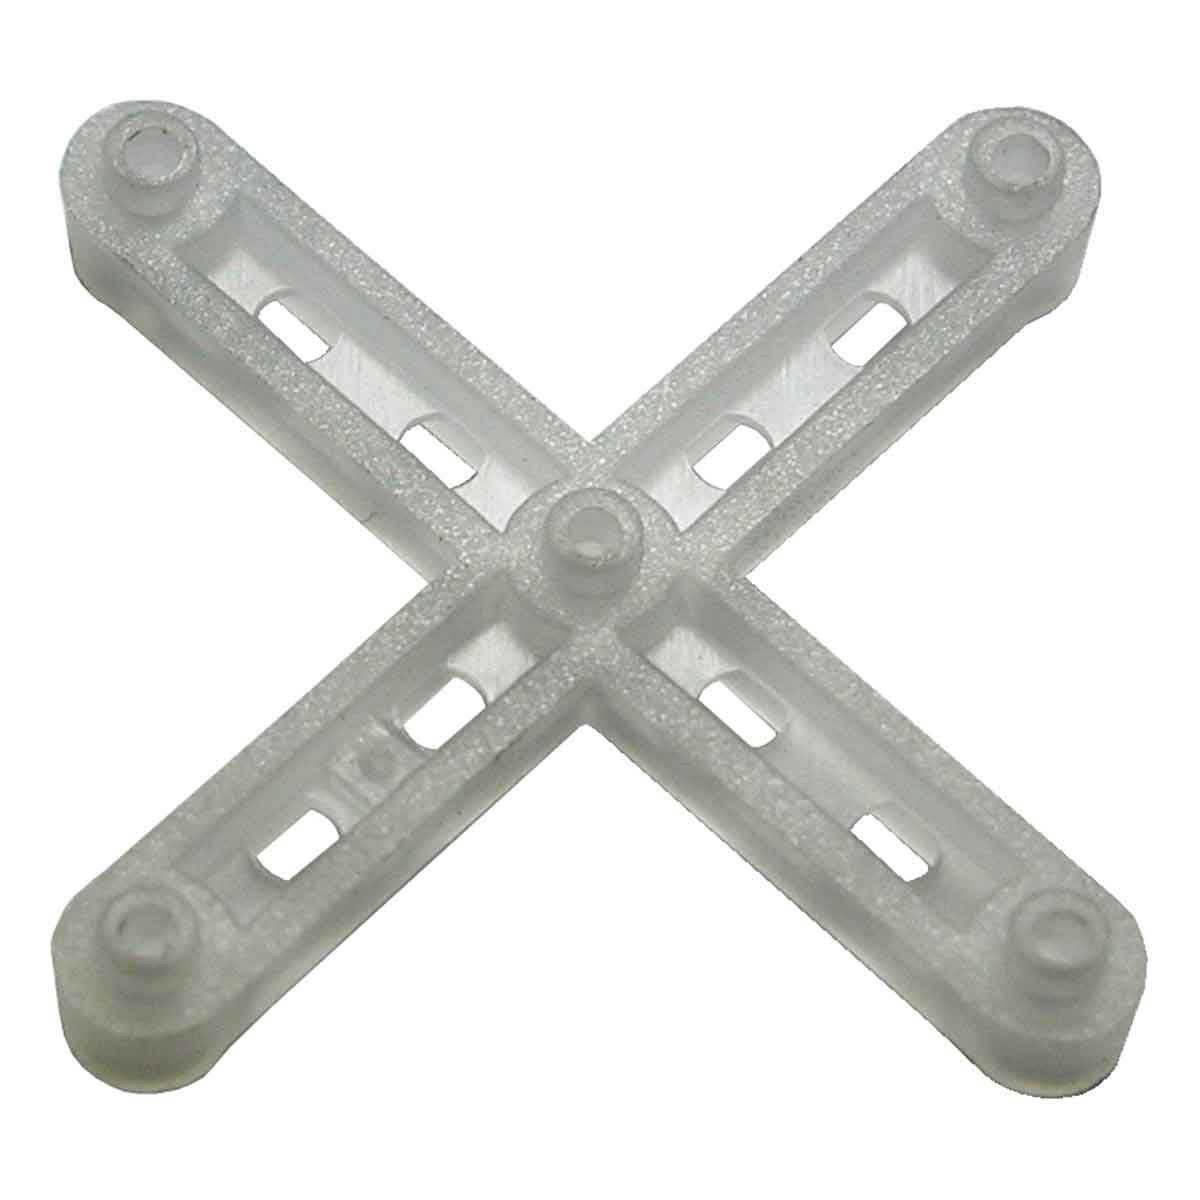 1/4 tile spacer, 7mm tile spacer